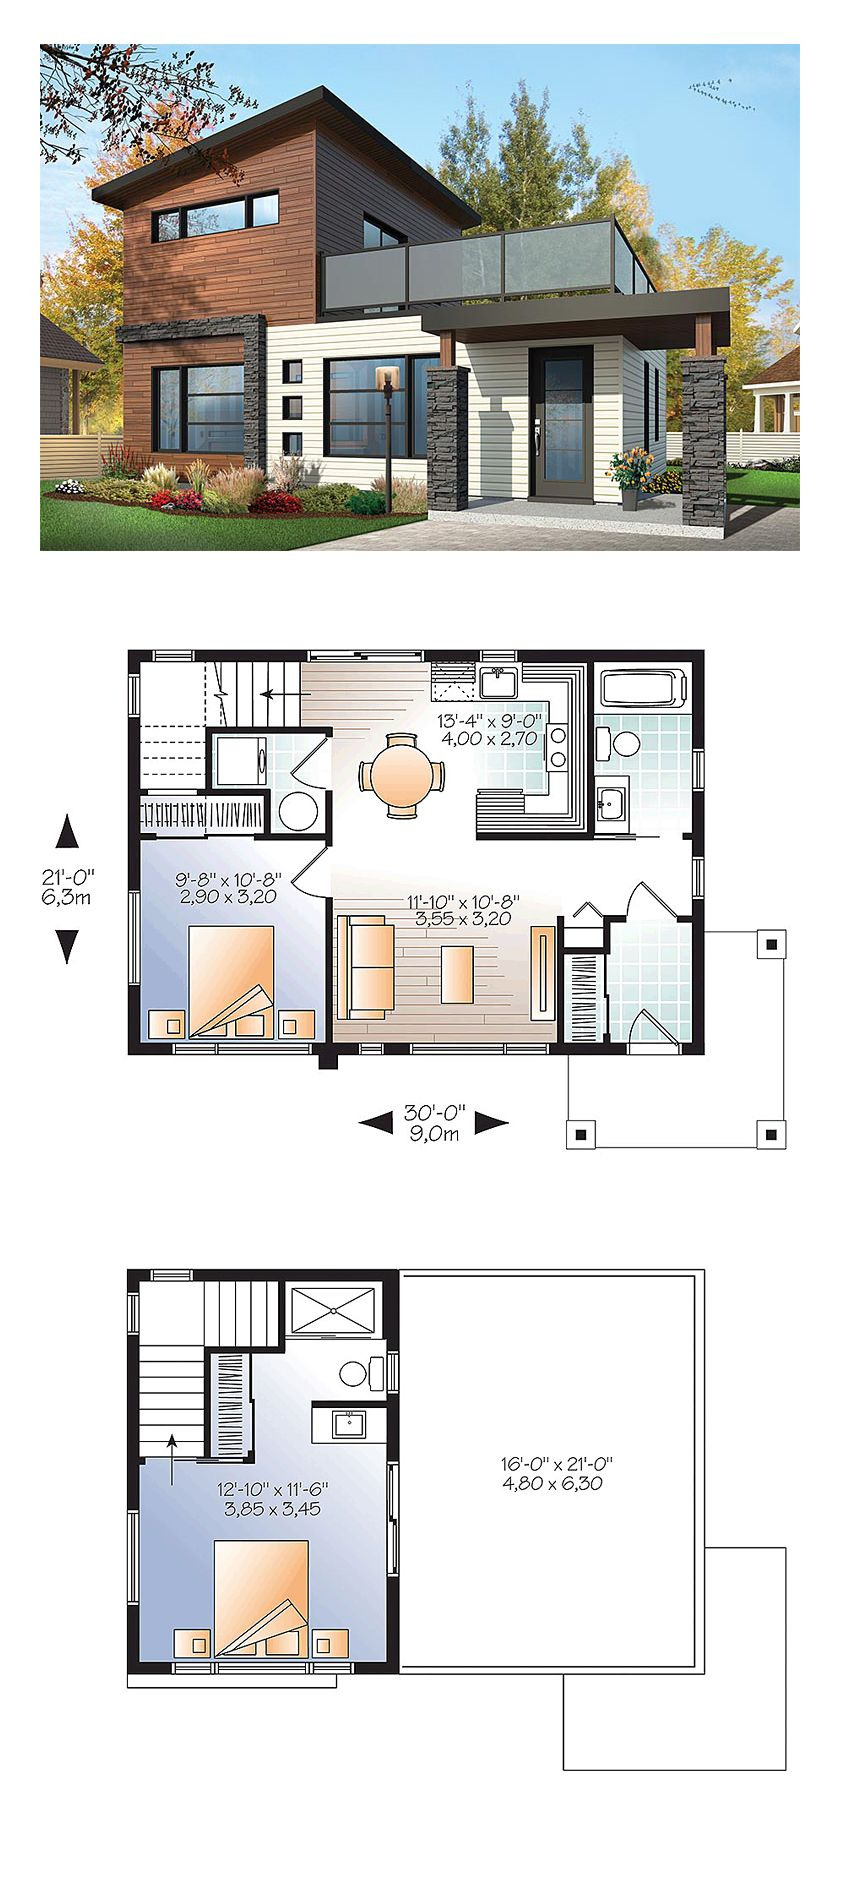 House Plans for Retired Couples Lovely Modern Style House Plan with 2 Bed 2 Bath